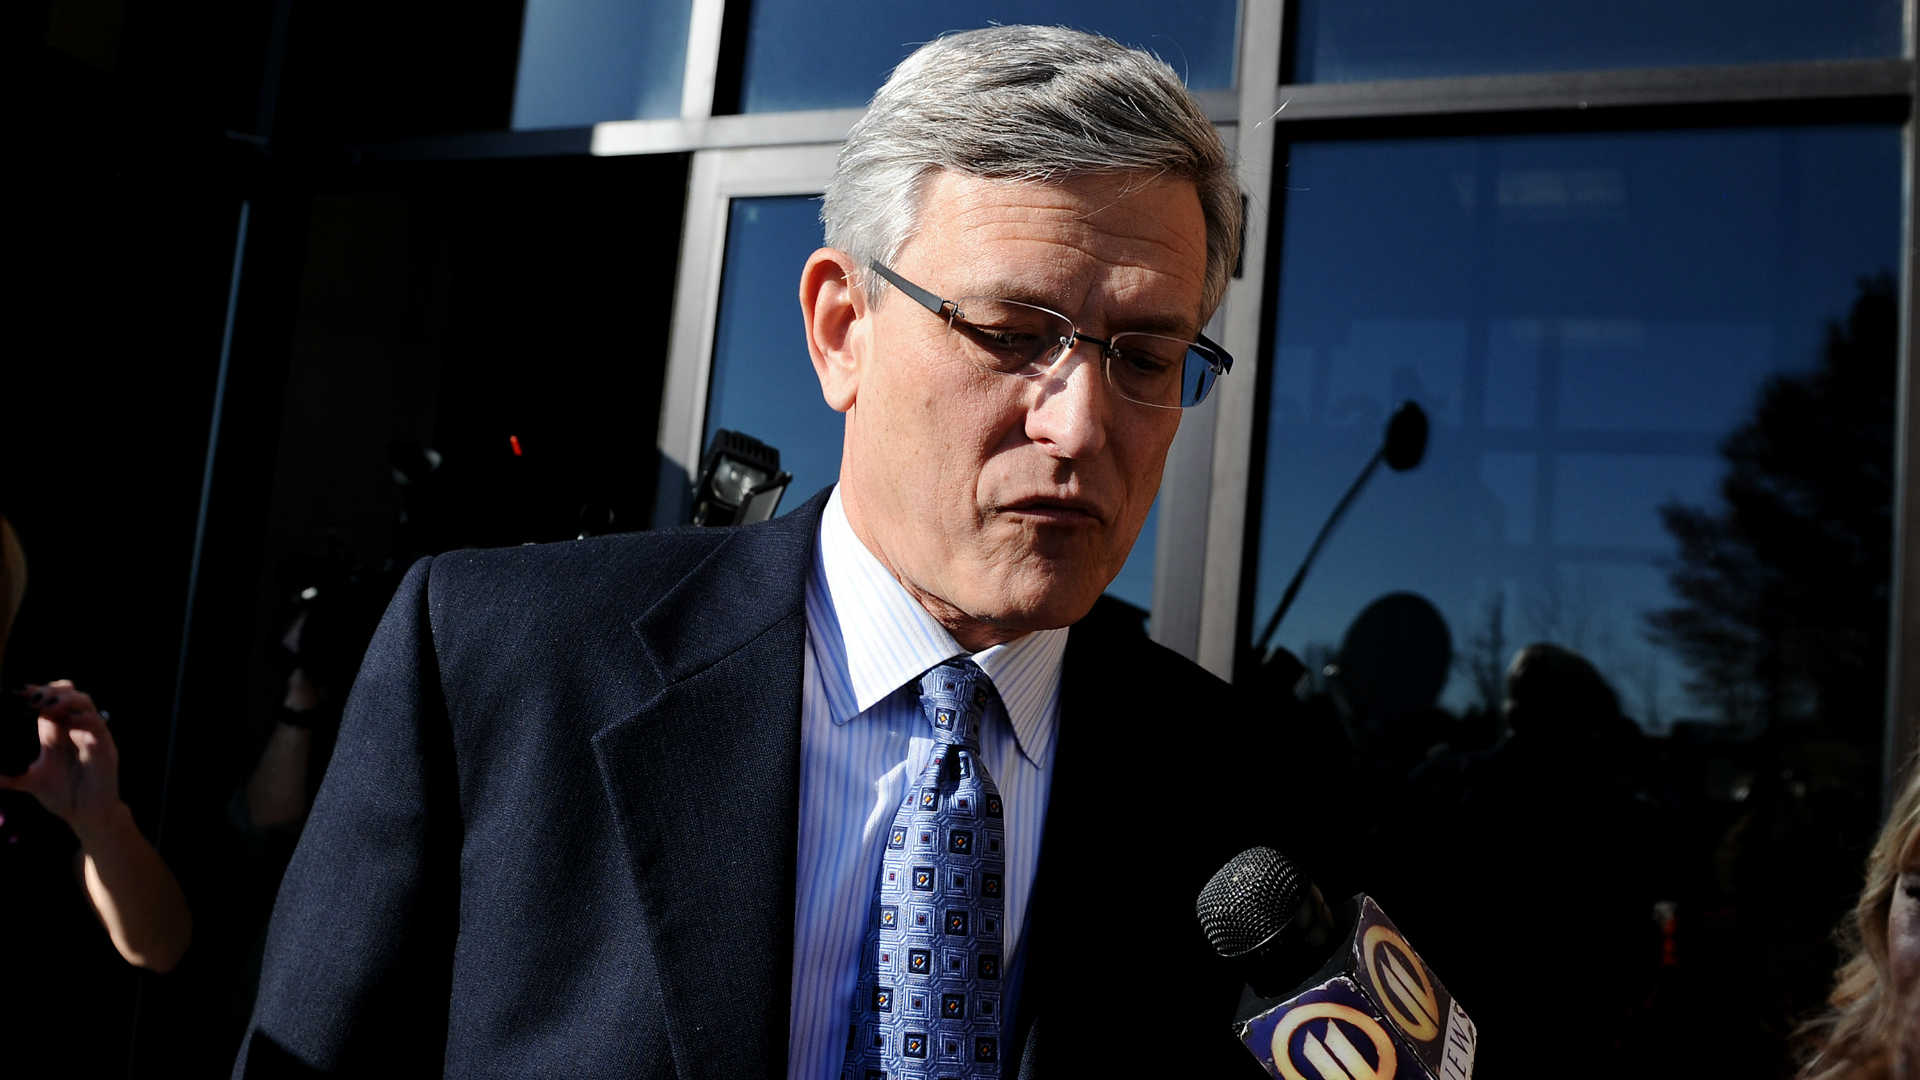 Ex-Penn State AD pleads guilty in abuse case